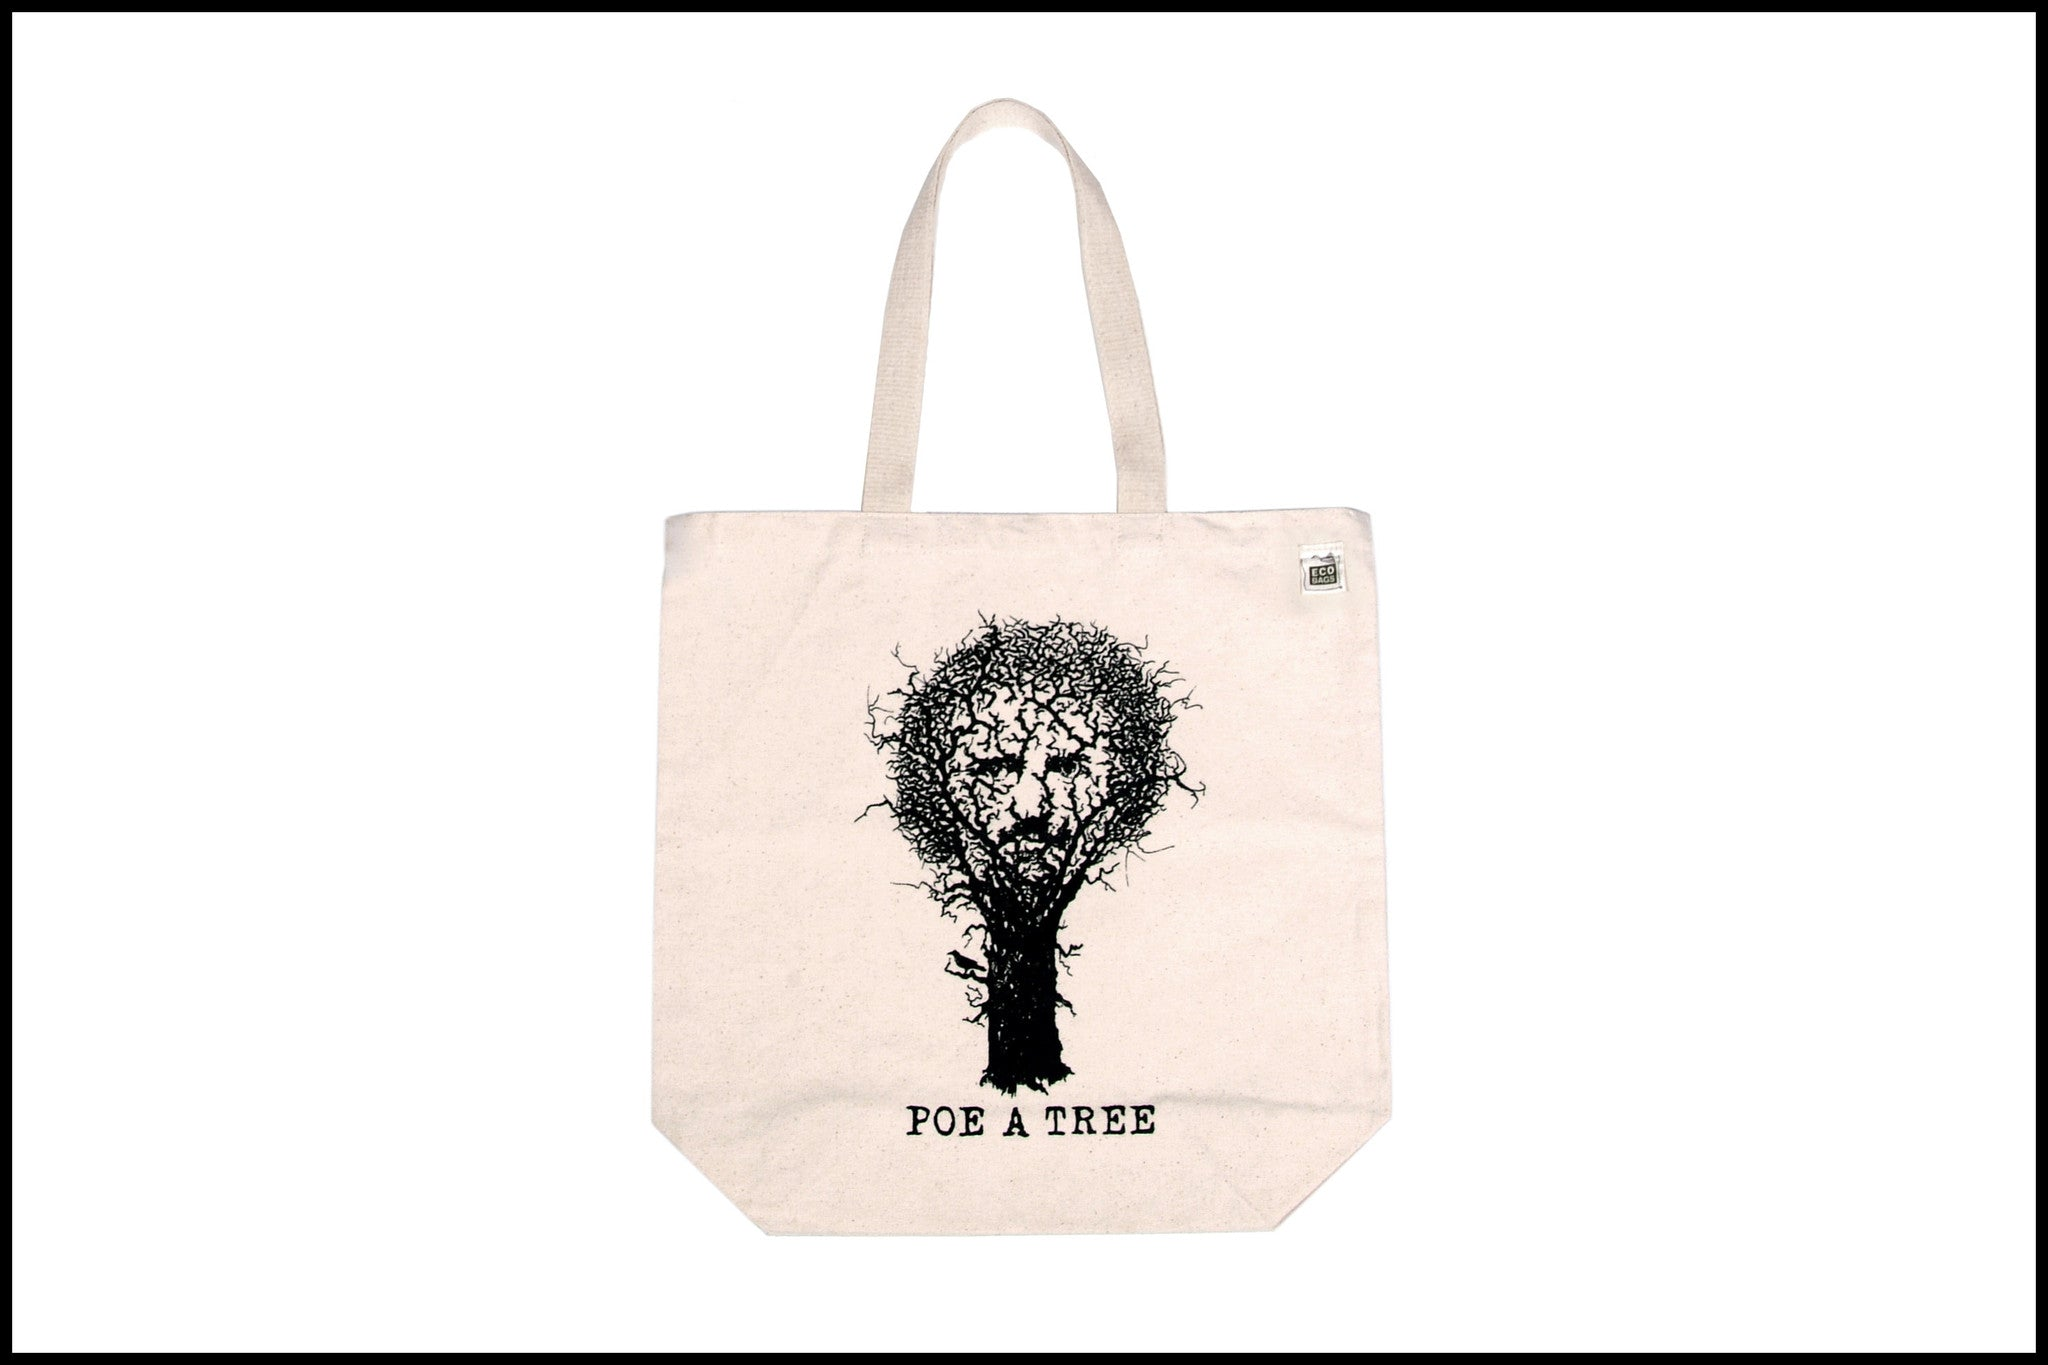 Poe A Tree Tote Bag (Special Edition)